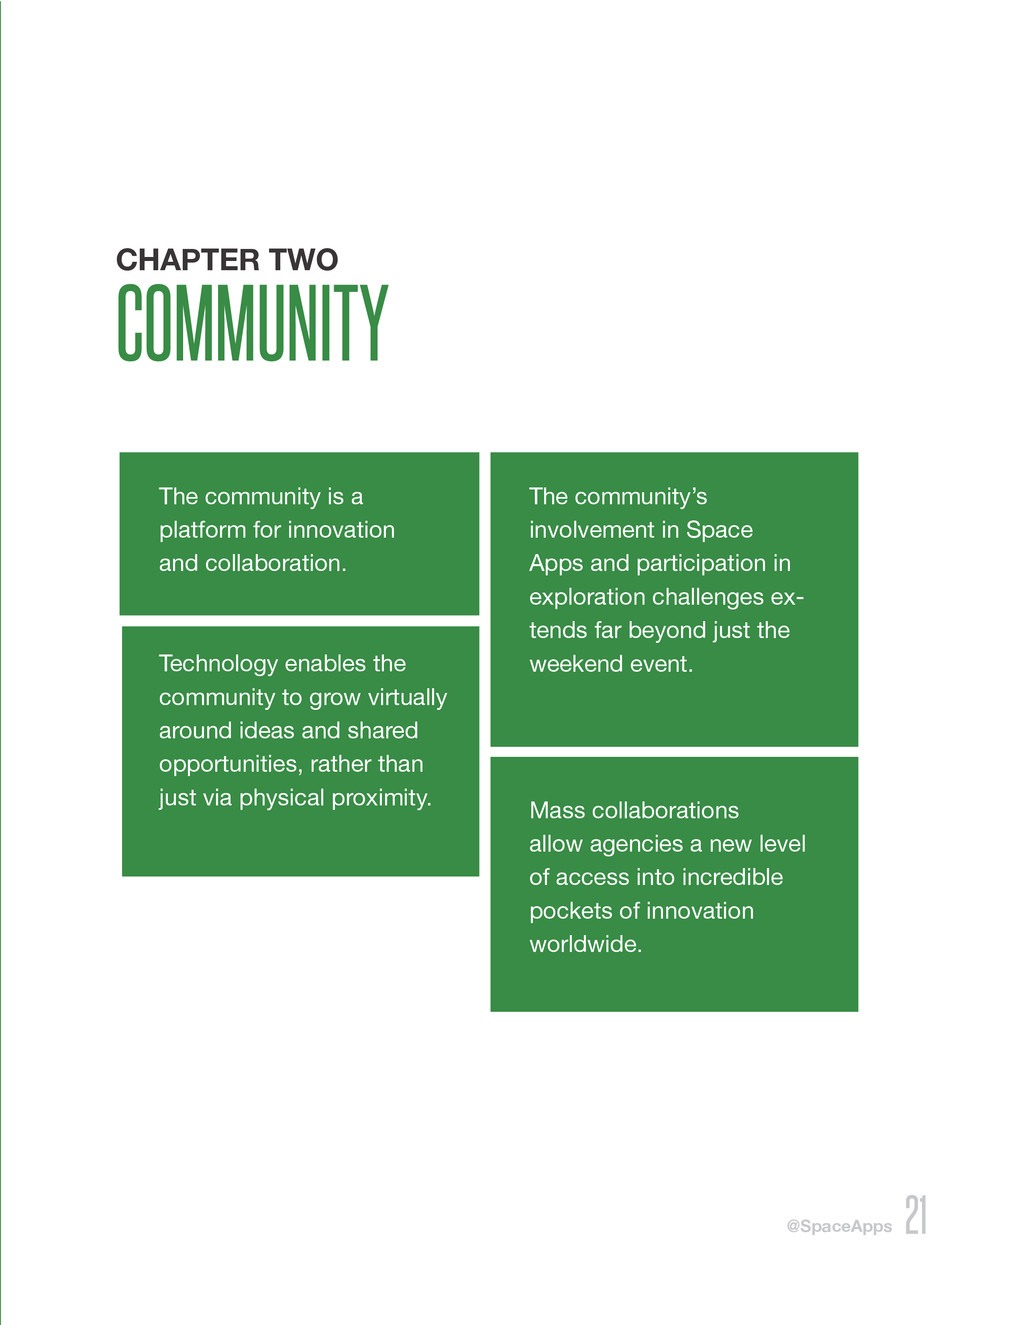 @SpaceApps 21 CHAPTER TWO COMMUNITY The communi...